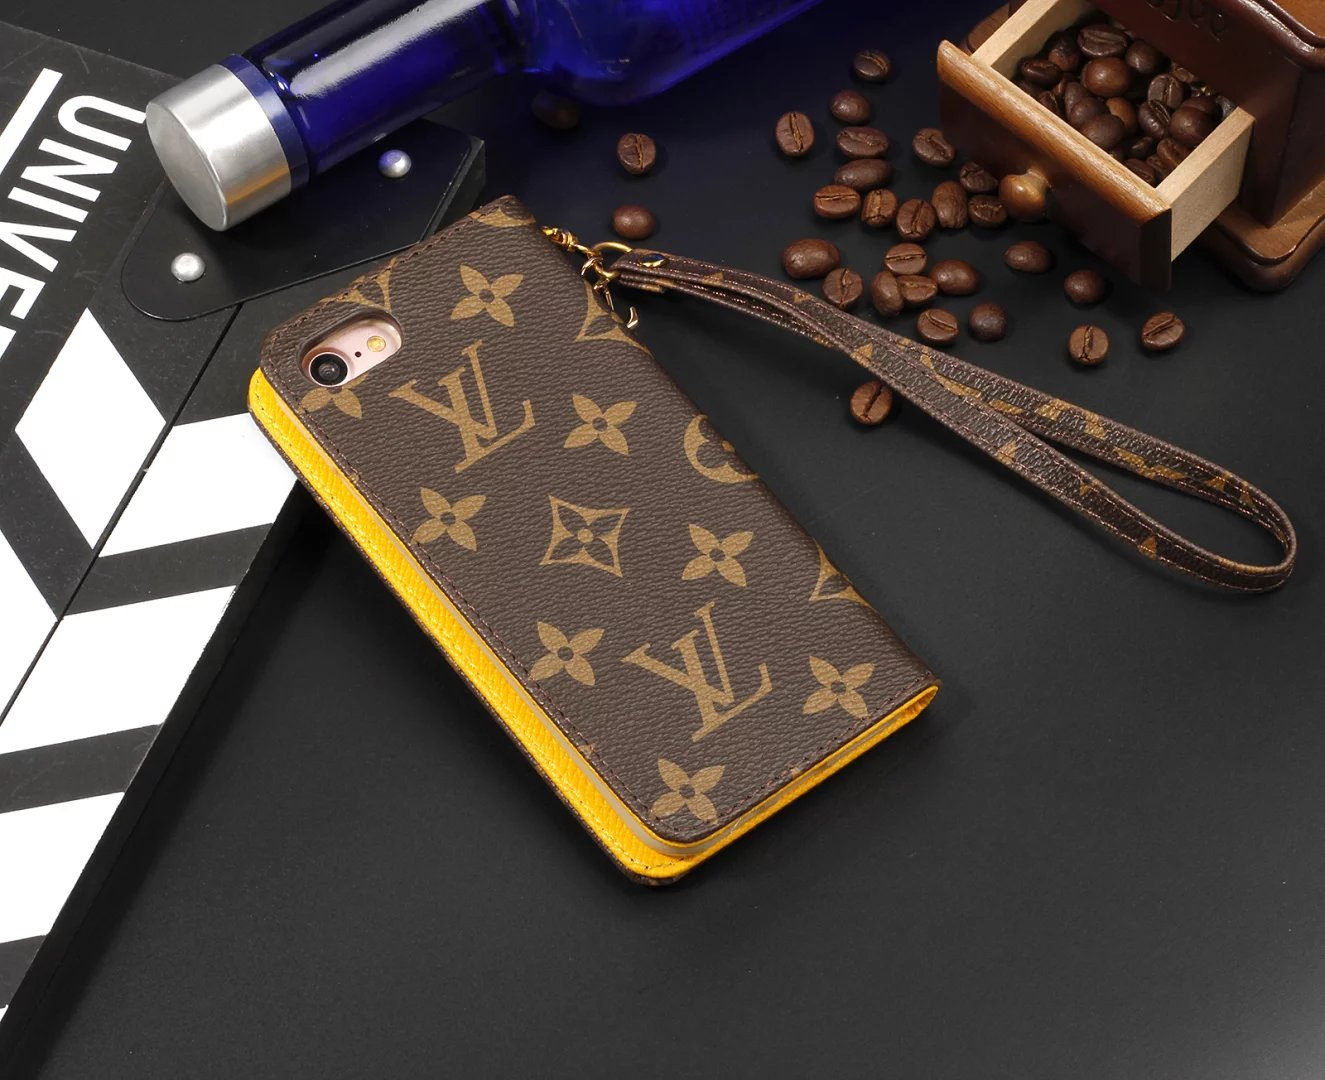 iphone 8 Plus cases in stores iphone 8 Plus apple cover Louis Vuitton iphone 8 Plus case iphones and cases create cell phone case where can i buy iphone 8 Plus cases cell phone skin covers case iphone case i phone 6